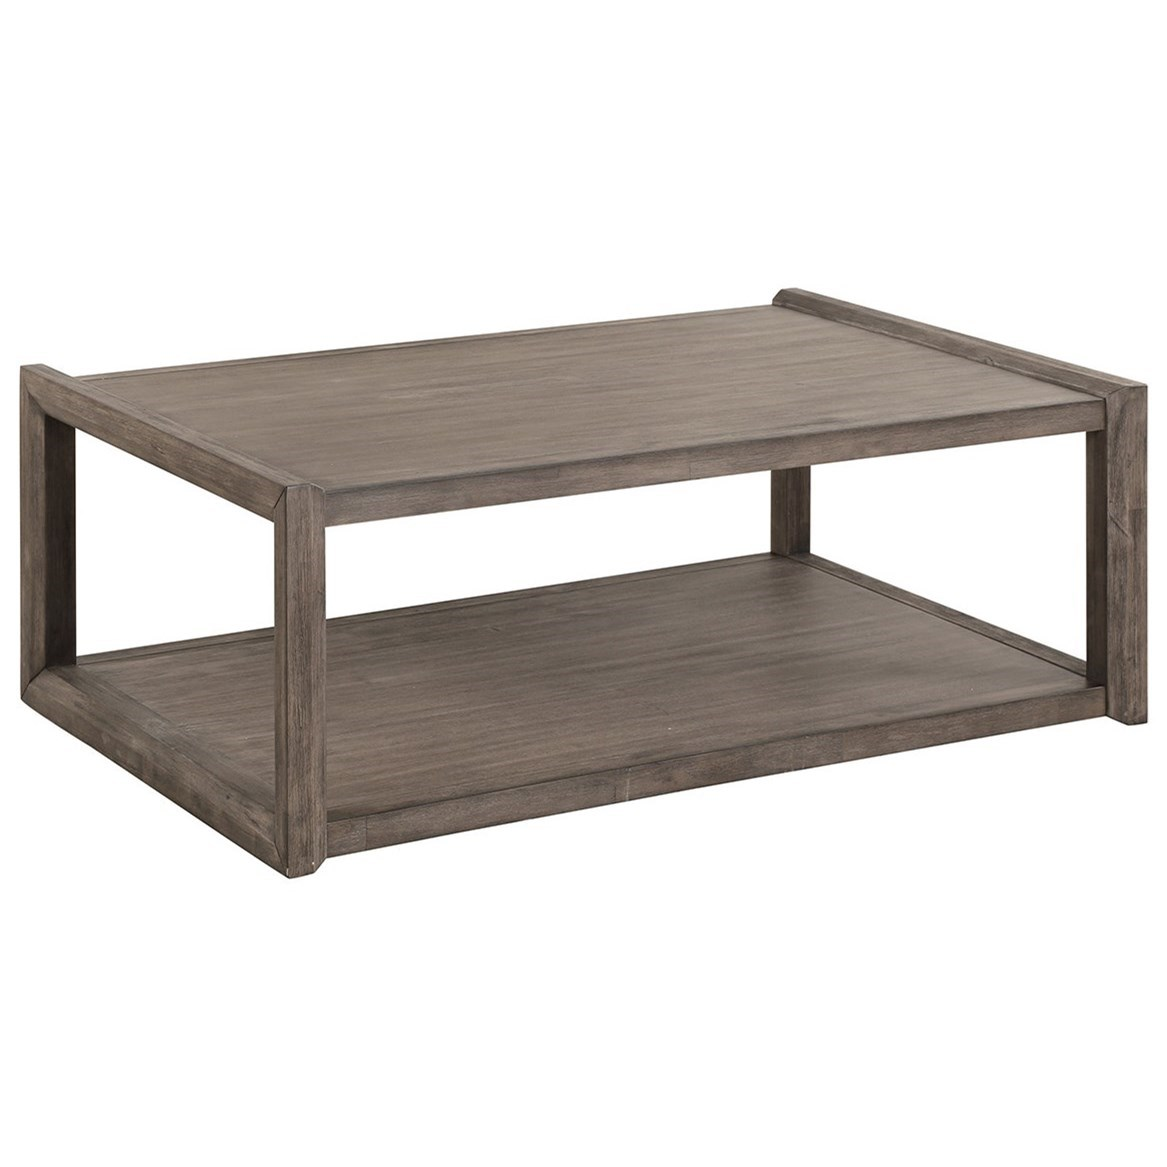 Avana Coffee Table by Legends Furniture at EFO Furniture Outlet